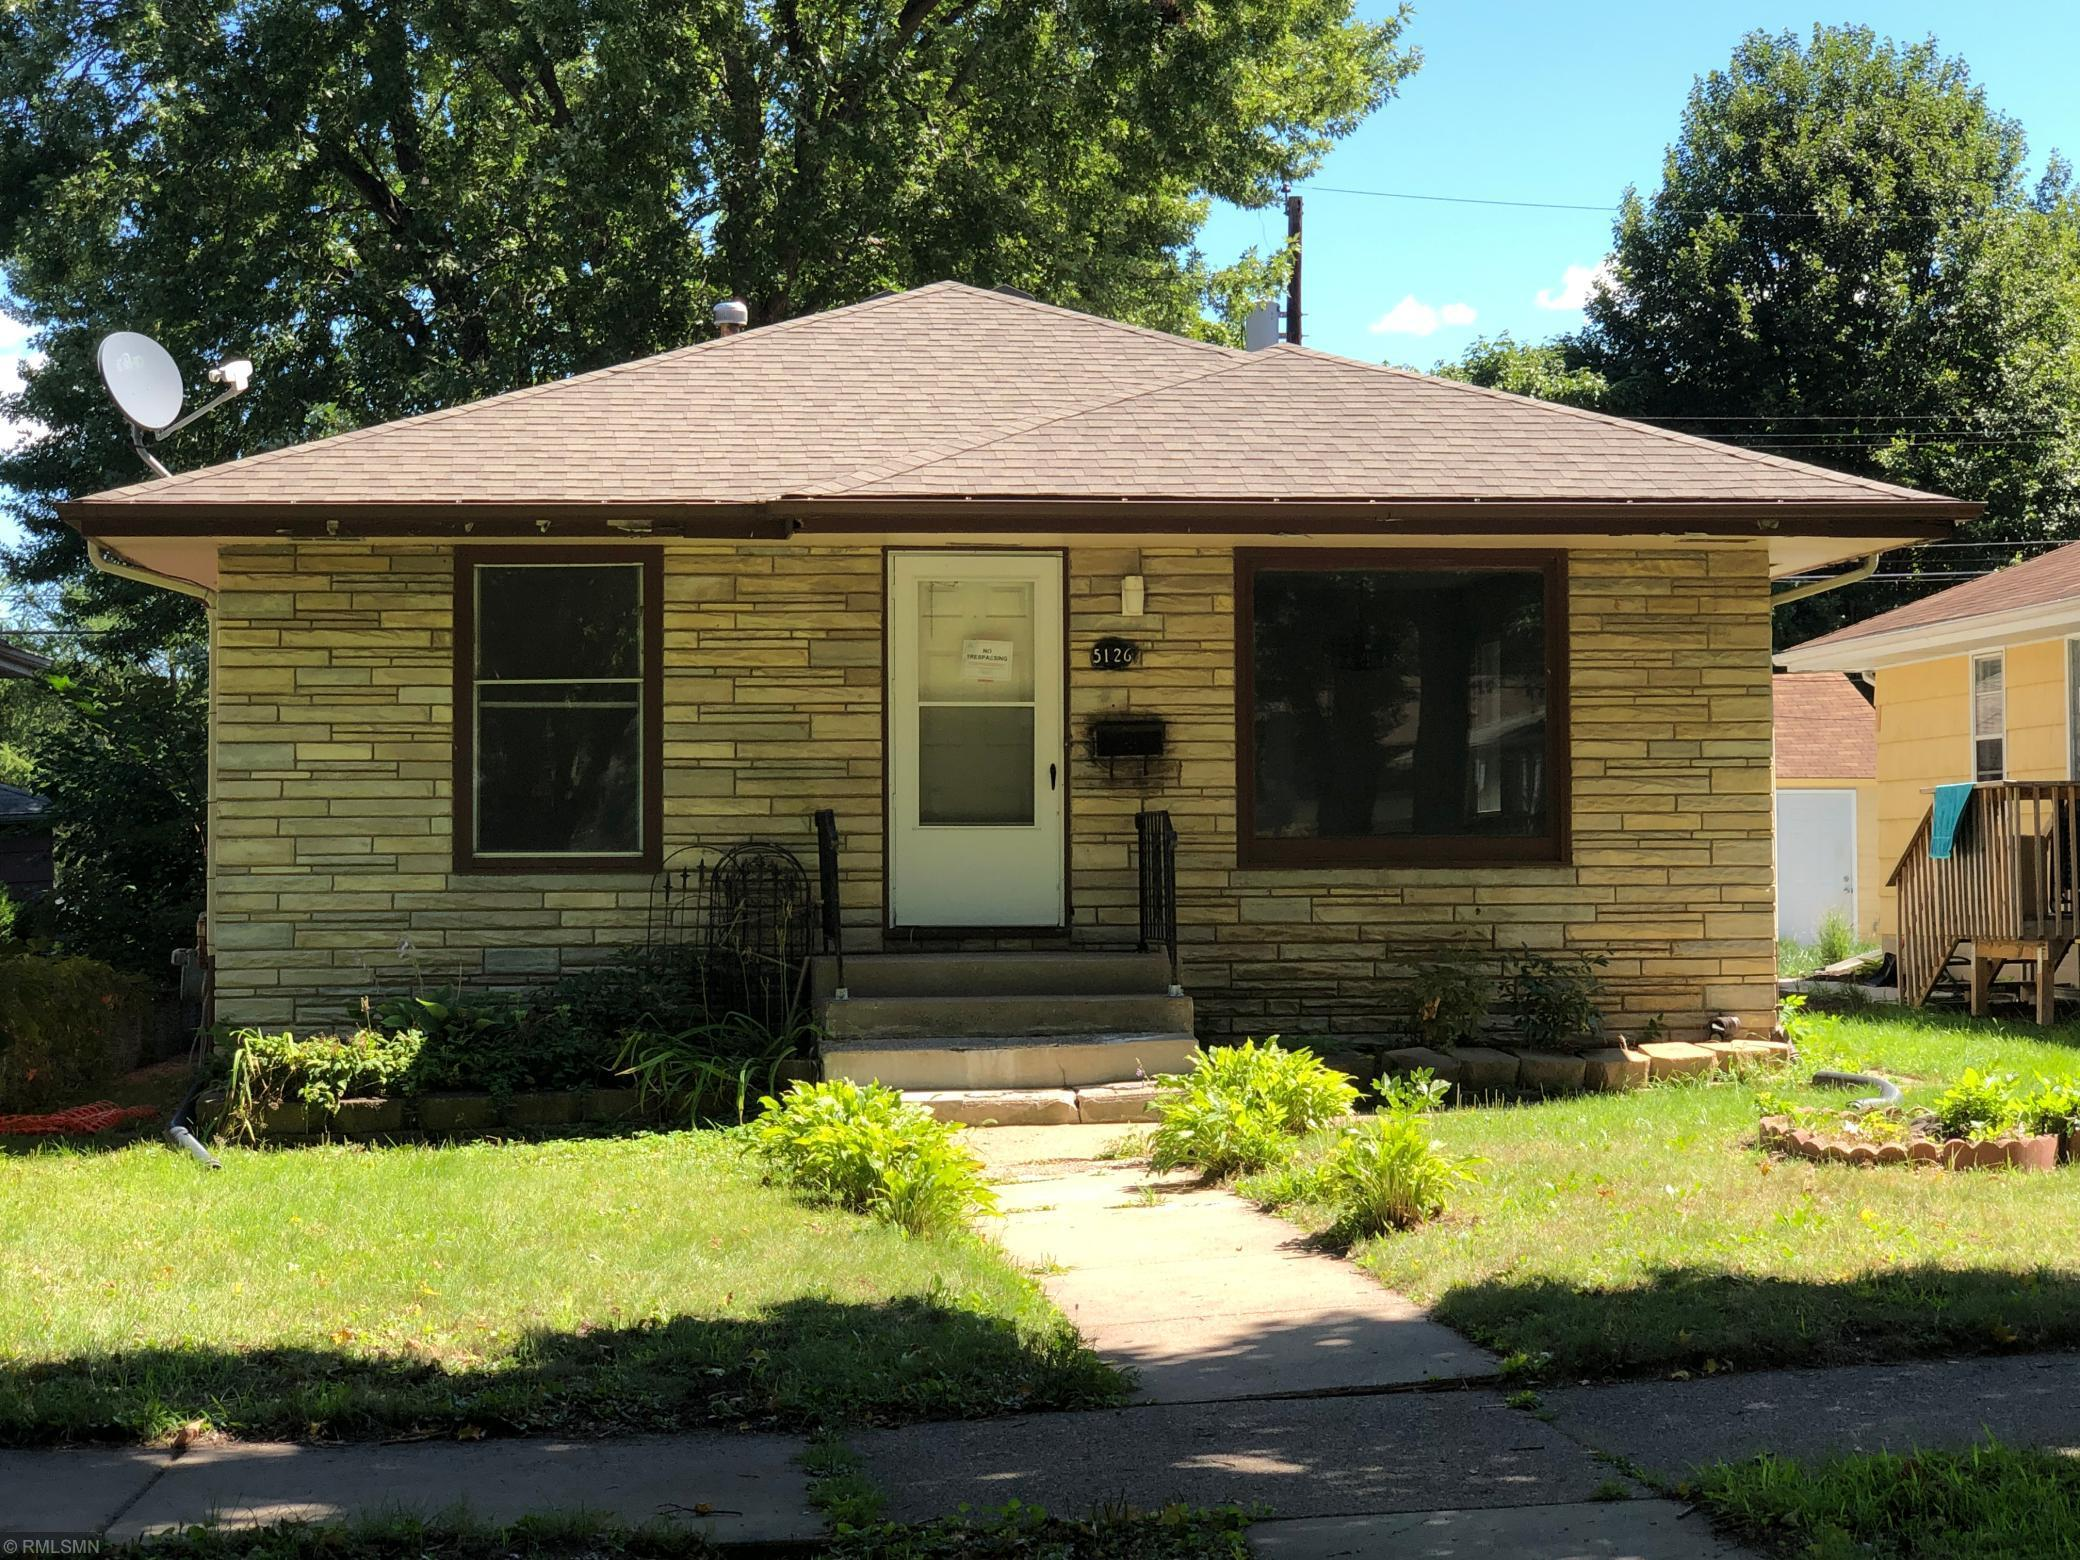 3 bedroom, 2 bath home located in desired Minneapolis! Located near schools, shopping, parks and much more! Must see today!